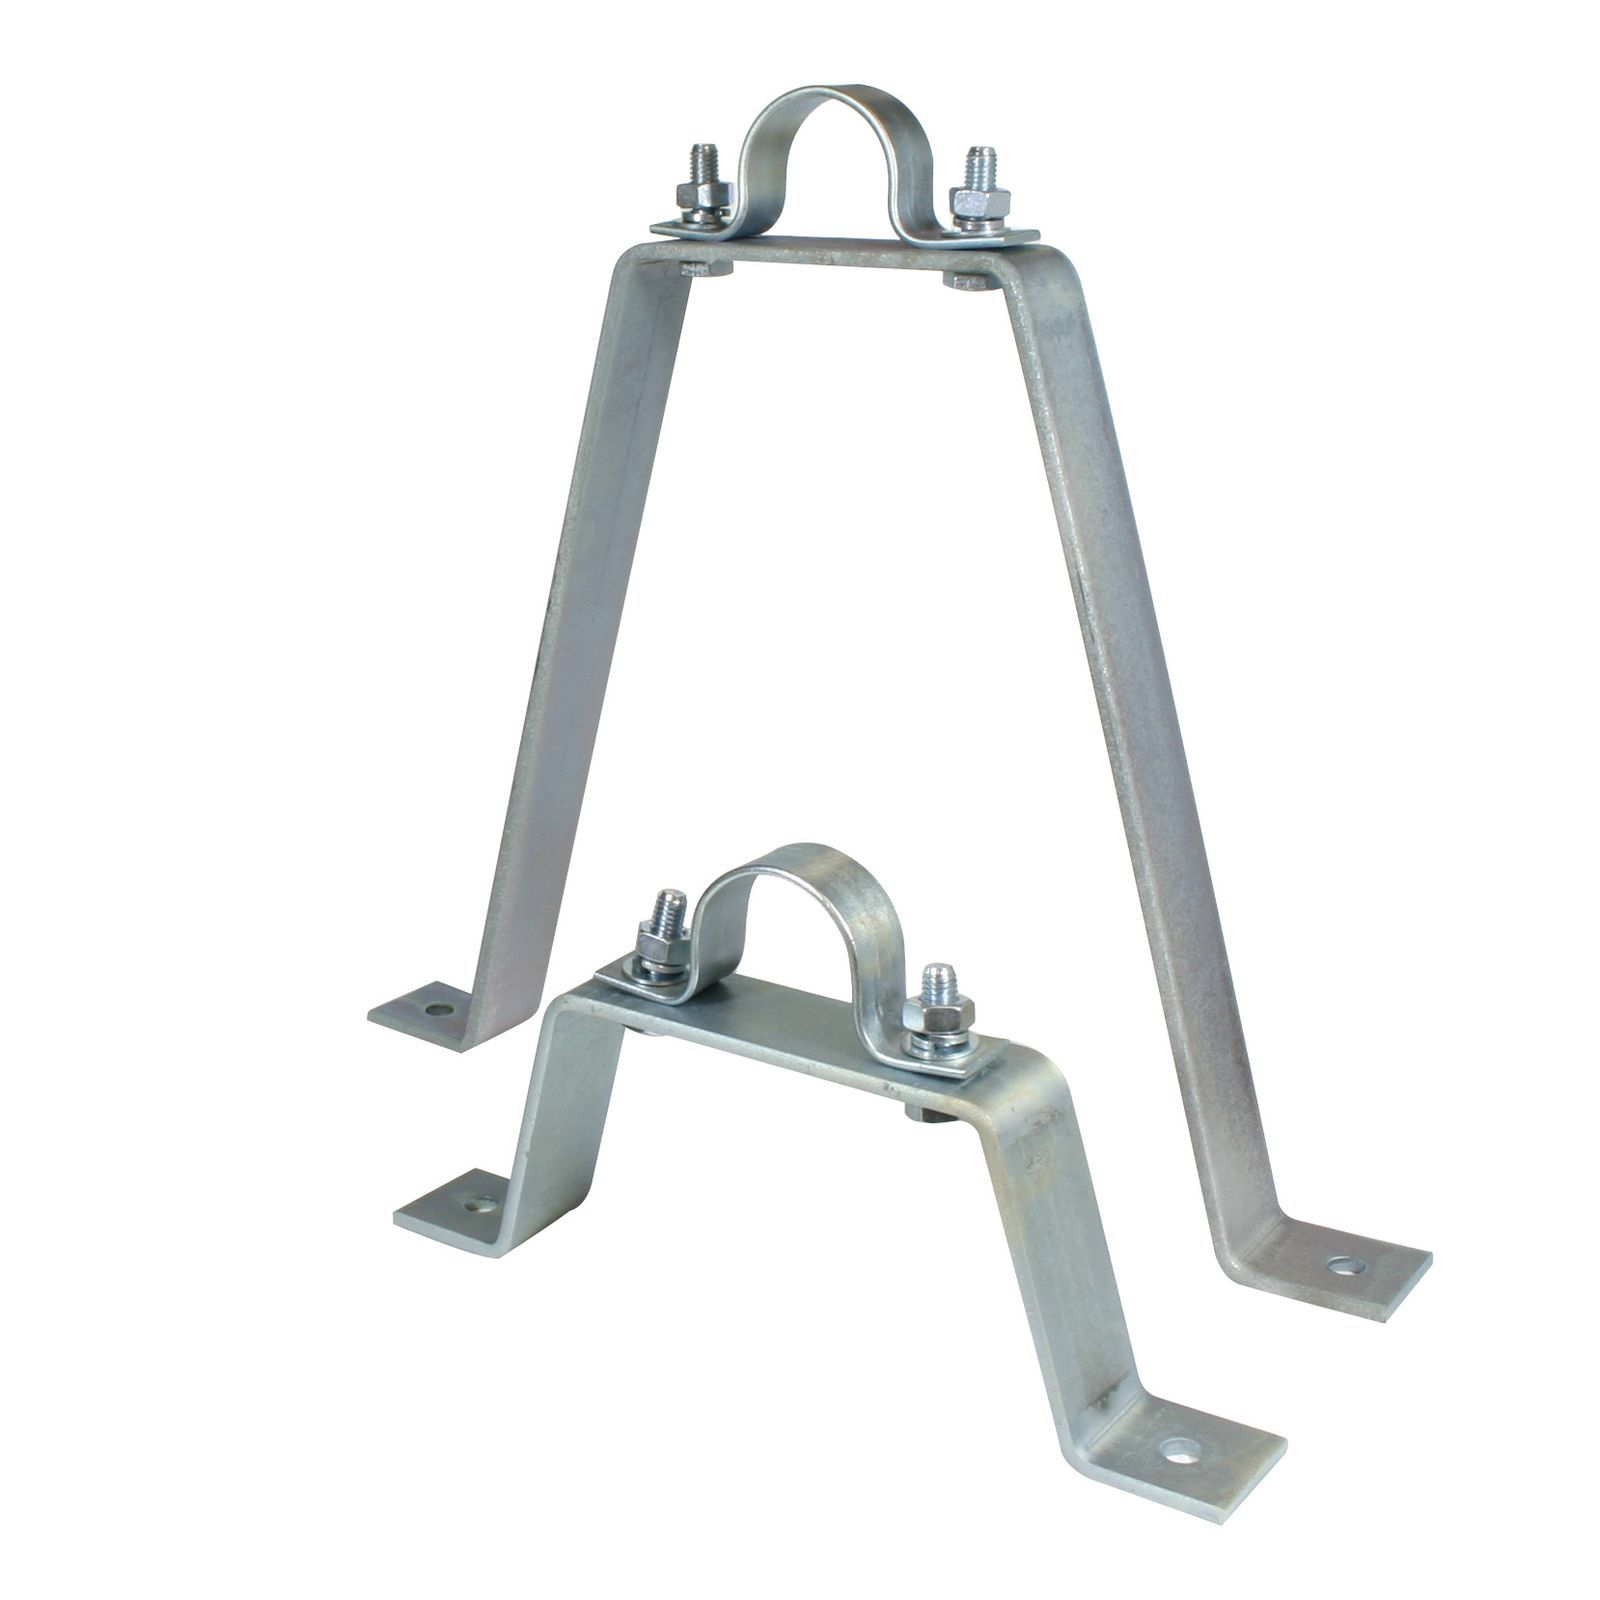 Doughty T33310 PIPE TO WALL BRACKET 100mm Stand off Produktbild